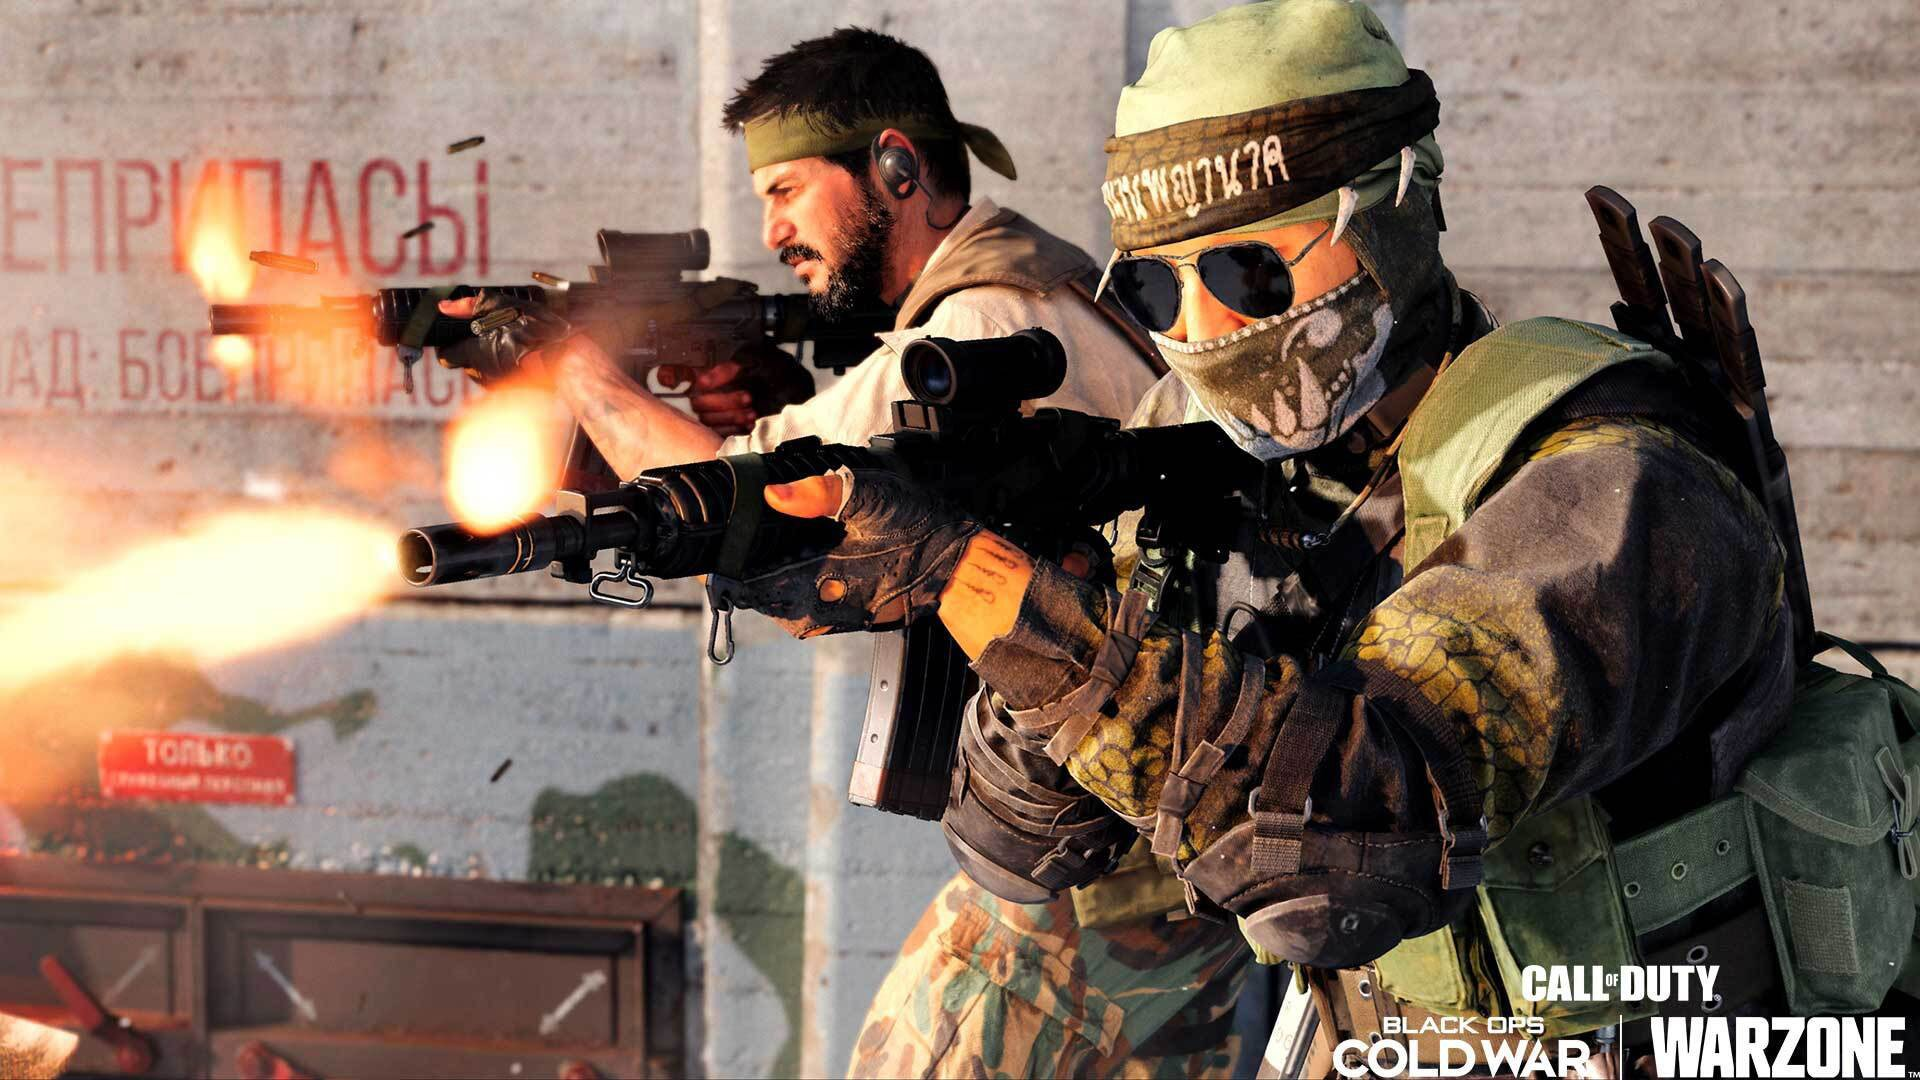 Black Ops Cold War & Warzone: Unlock weapons FARA 83, LC10 and machete - that's how it works